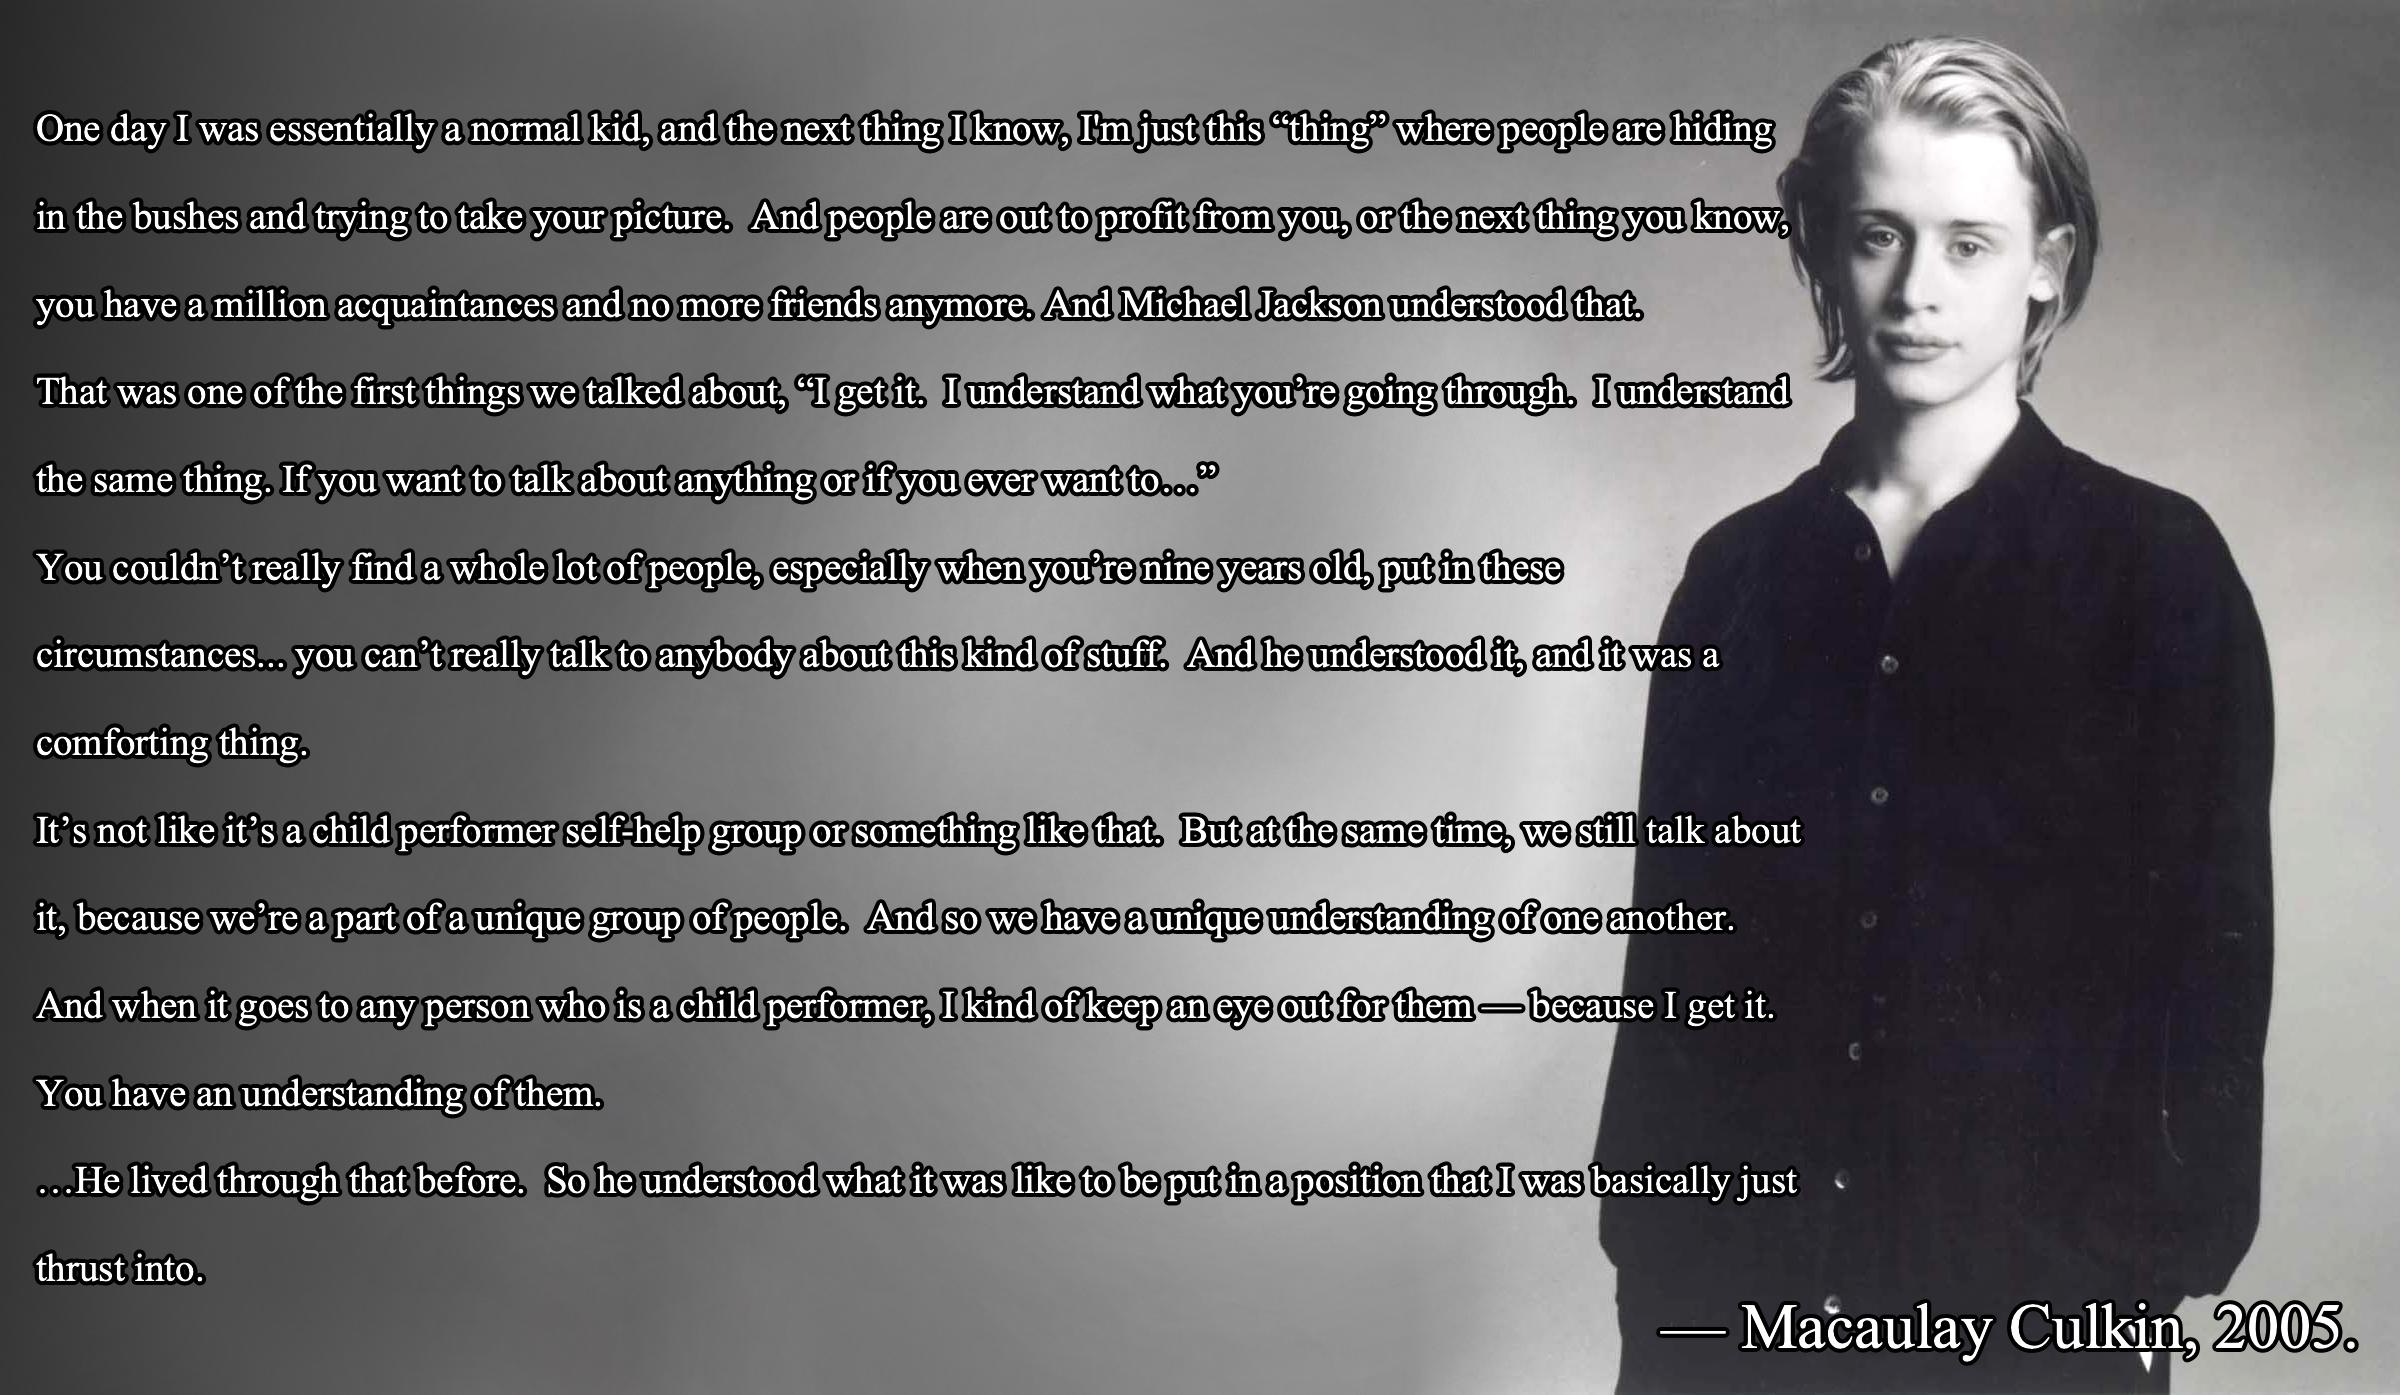 """One day I was essentially a normal kid, and the next thing I know, I'm just this ""thing"" where people are hiding in the bushes and trying to take your picture. And people are out to profit from you… And Michael Jackson understood that."" – Macaulay Culkin [2400 x 1395]"